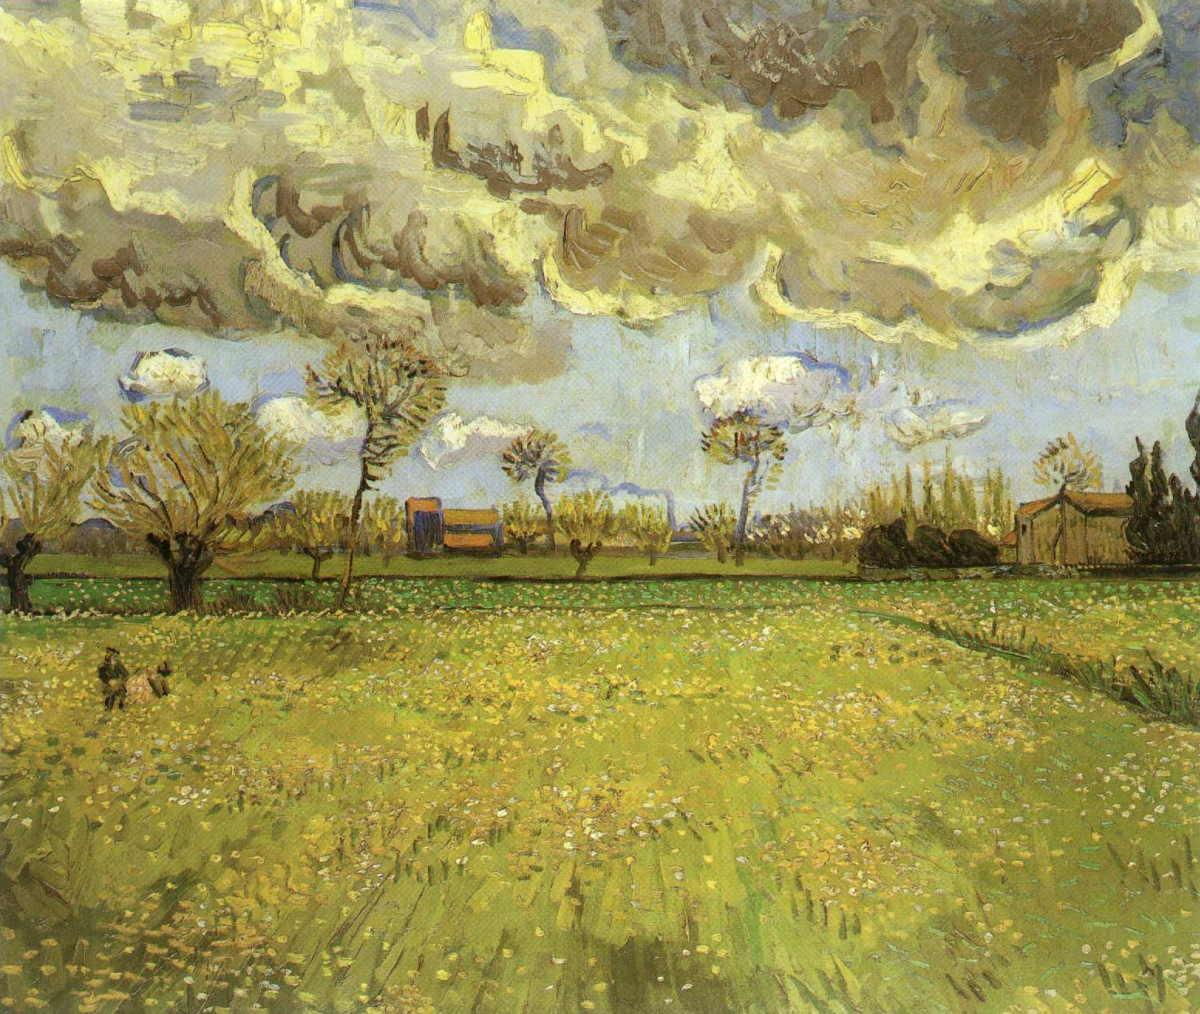 Landscape under Stormy Skies